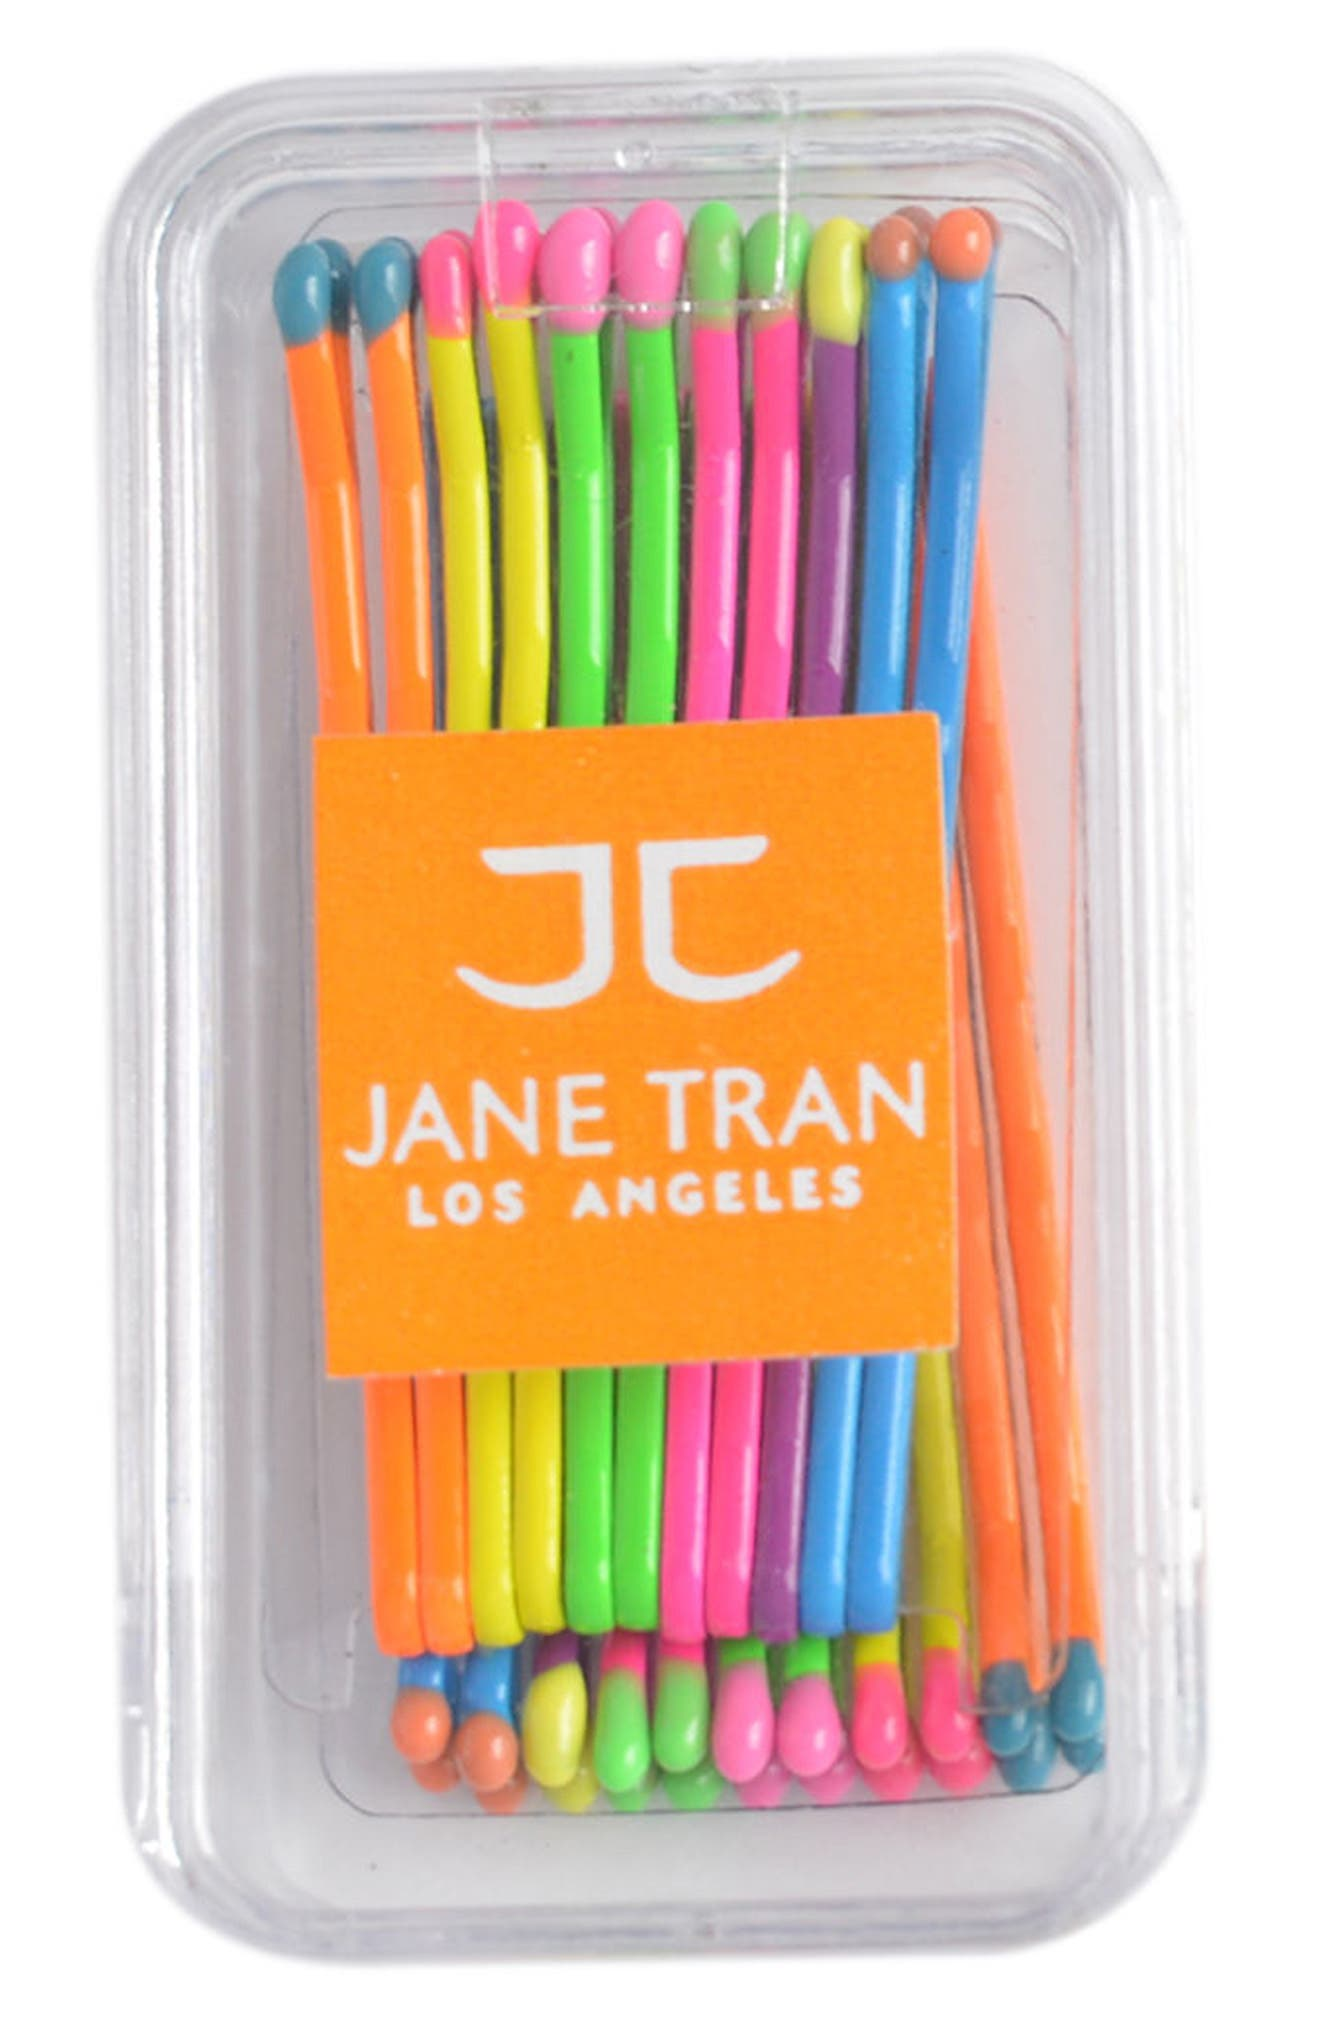 Neon Rainbow Matchsticks Set of 20 Assorted Bobby Pins,                             Alternate thumbnail 3, color,                             960